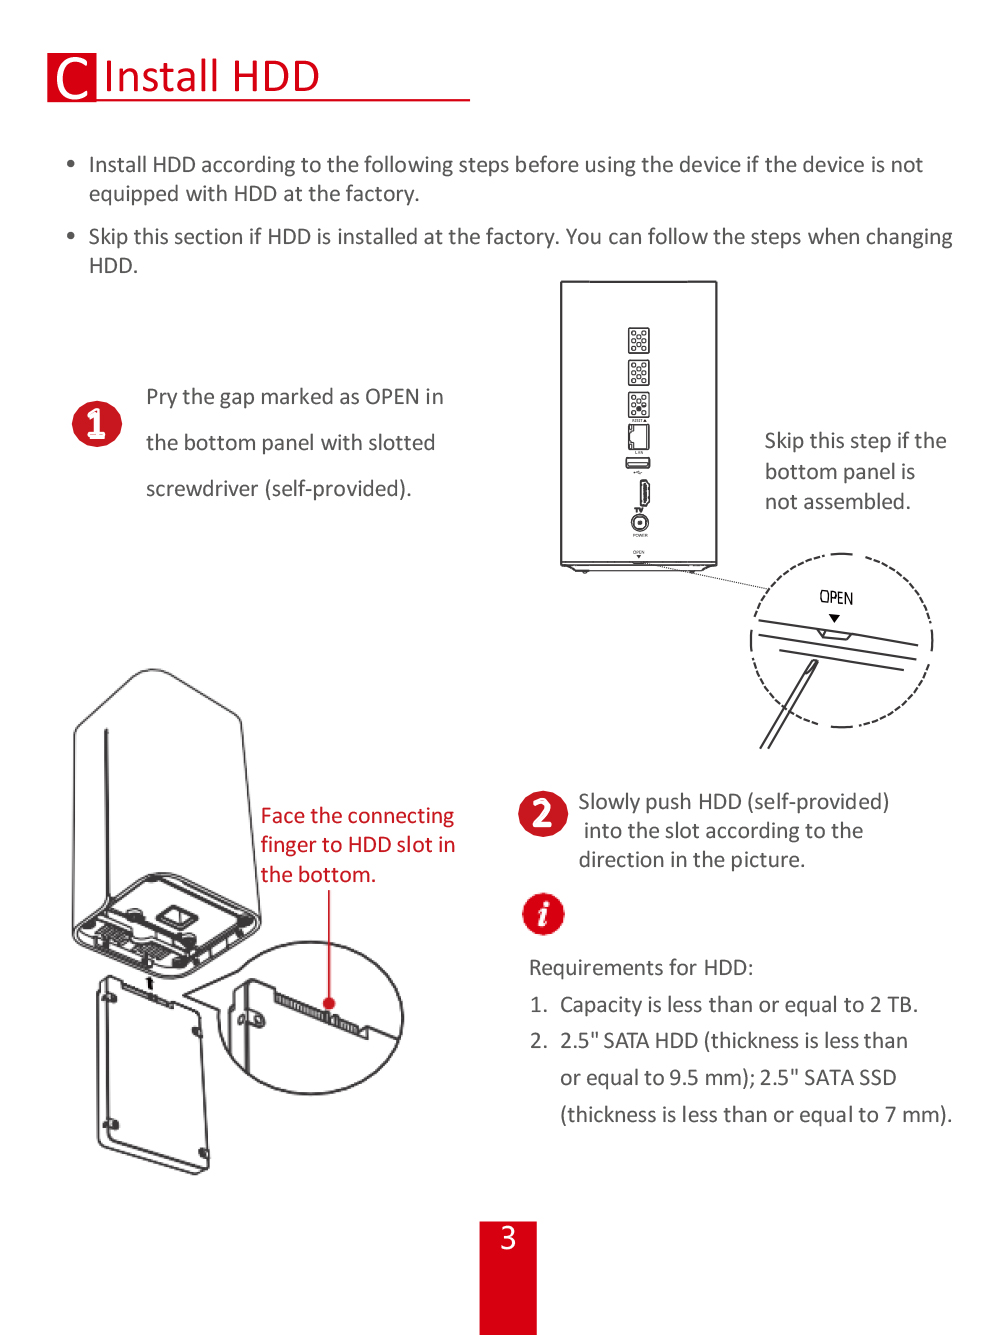 User-Manual-of-Hikvision-Personal-Private-NAS-H90-20190717-4